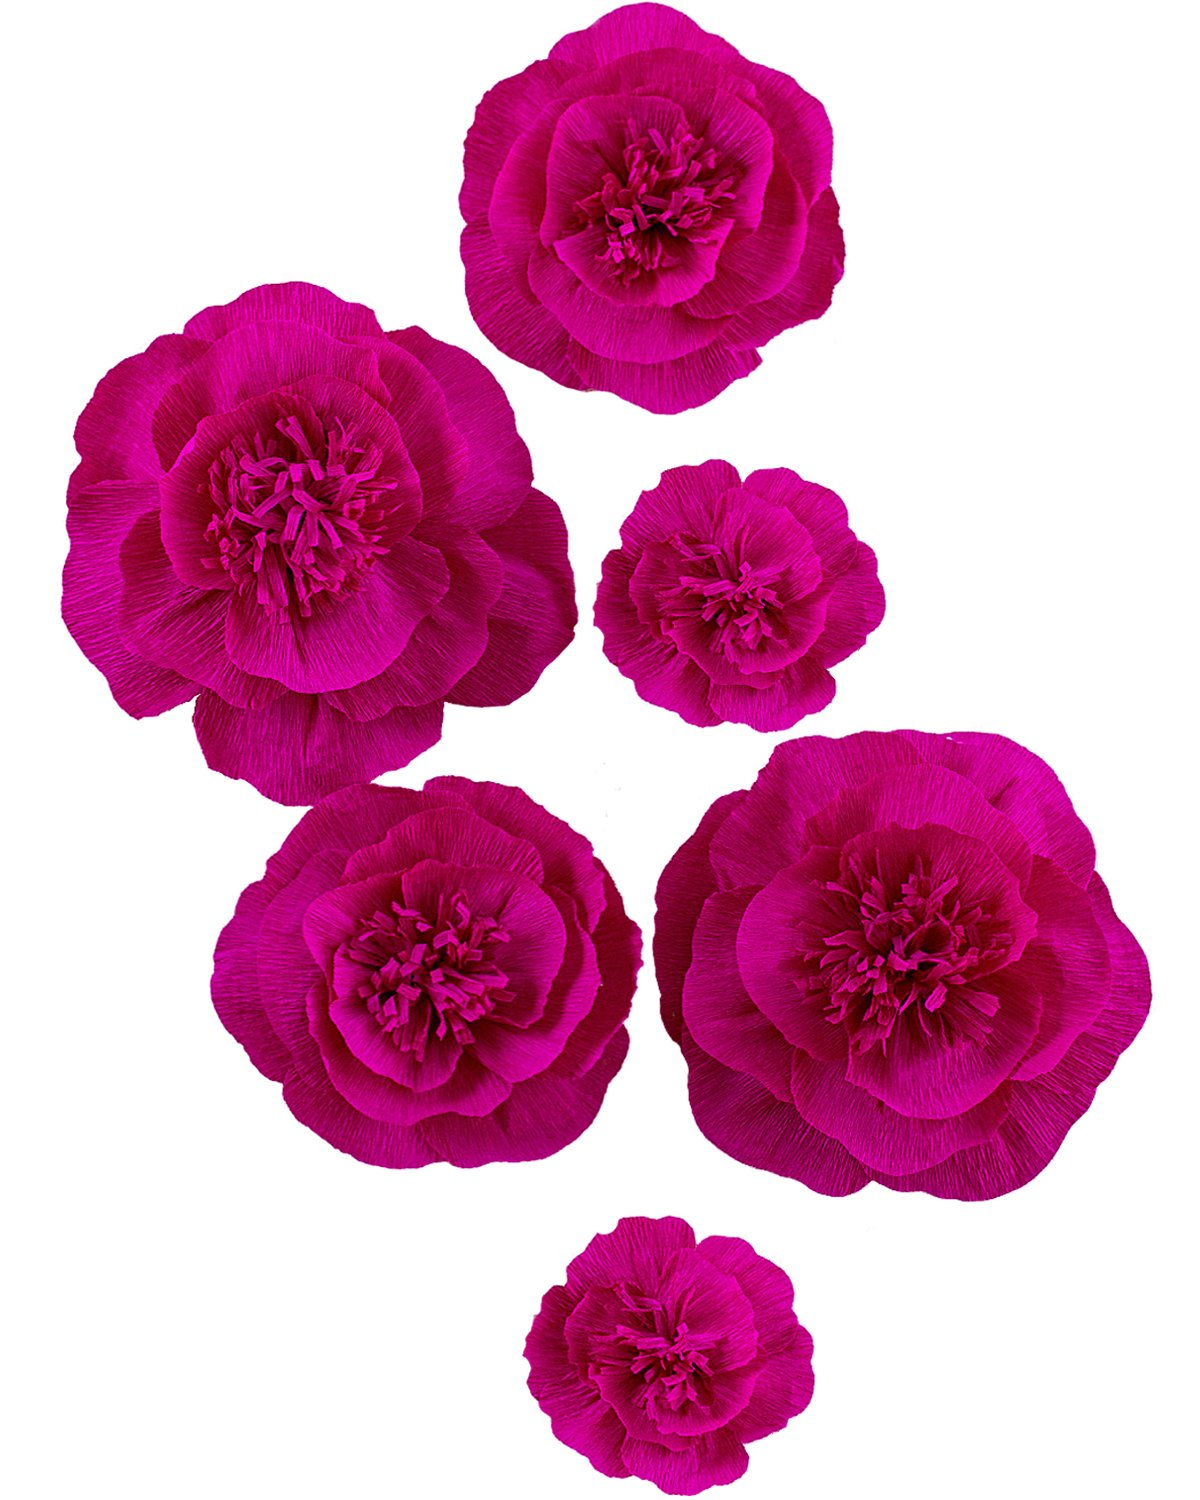 Letjolt ROSEO Paper Flower Decorations for Wall Backdrop Easter Sunday Decor Wedding Ornaments Birthday Party Baby Shower Bridal Shower Nursery Wall(ROSEO Set 6)